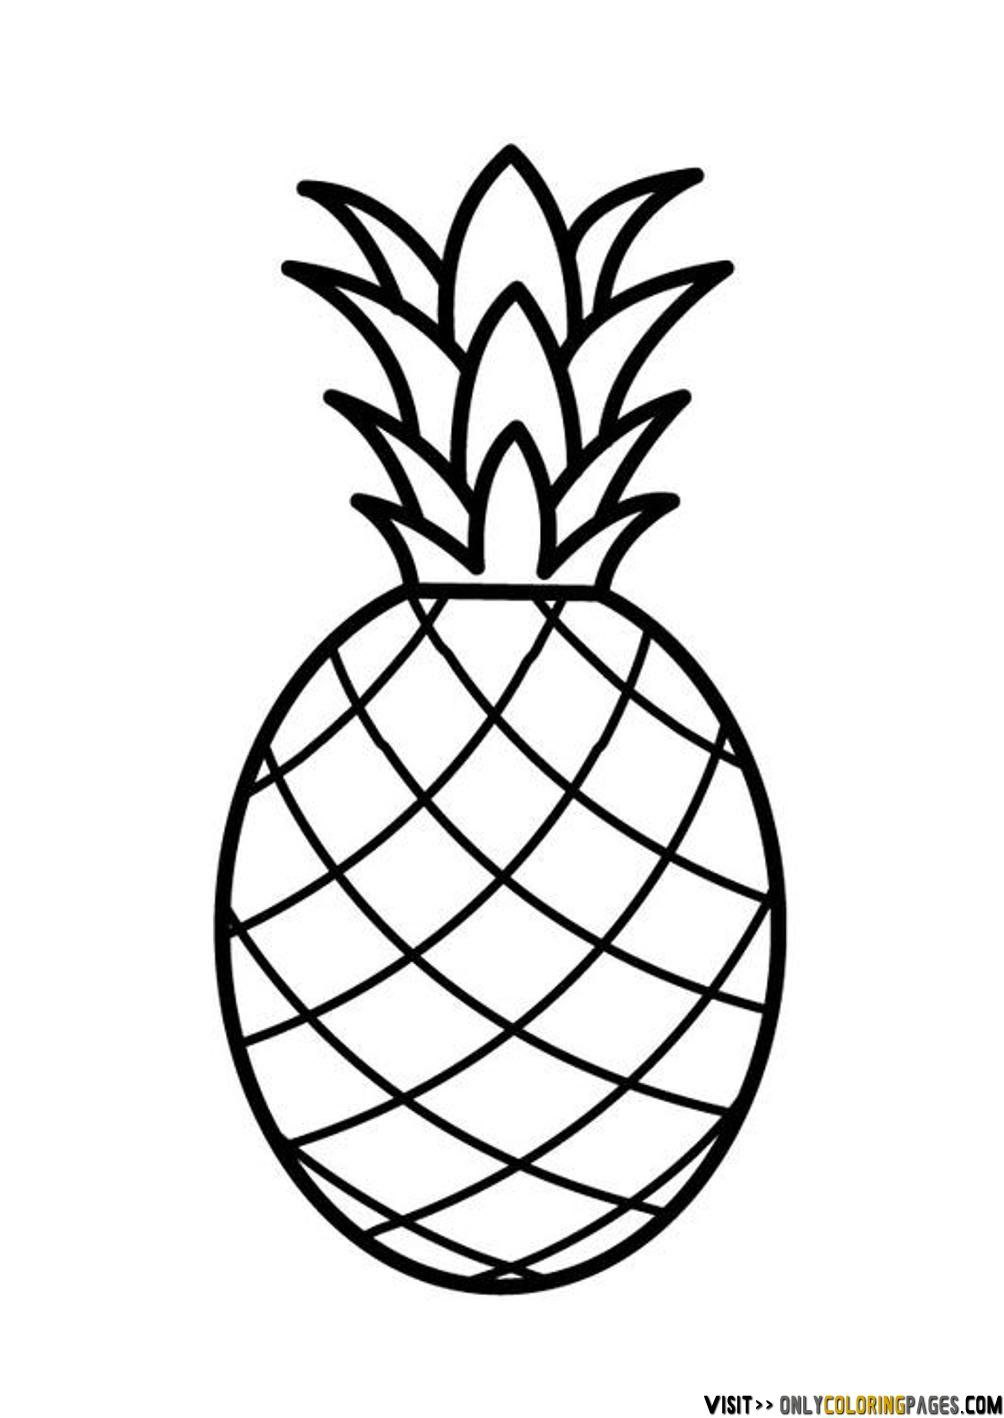 pineapple coloring page | Only Coloring Pages | Youth Jewelry ... for Clipart Pineapple Black And White  111ane